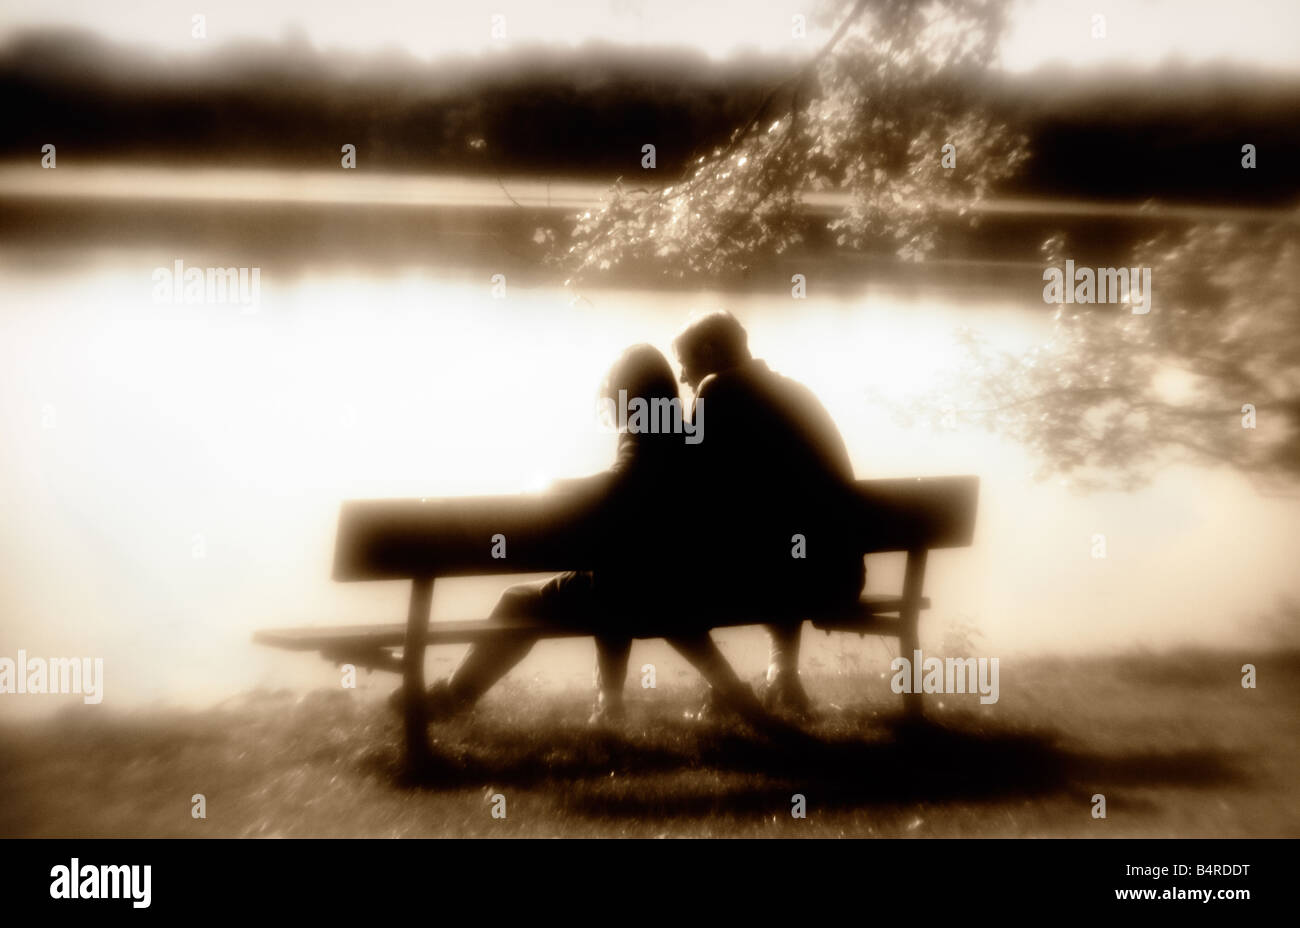 two people on a park bench silhouetted against a lake in sepia tones Stock Photo